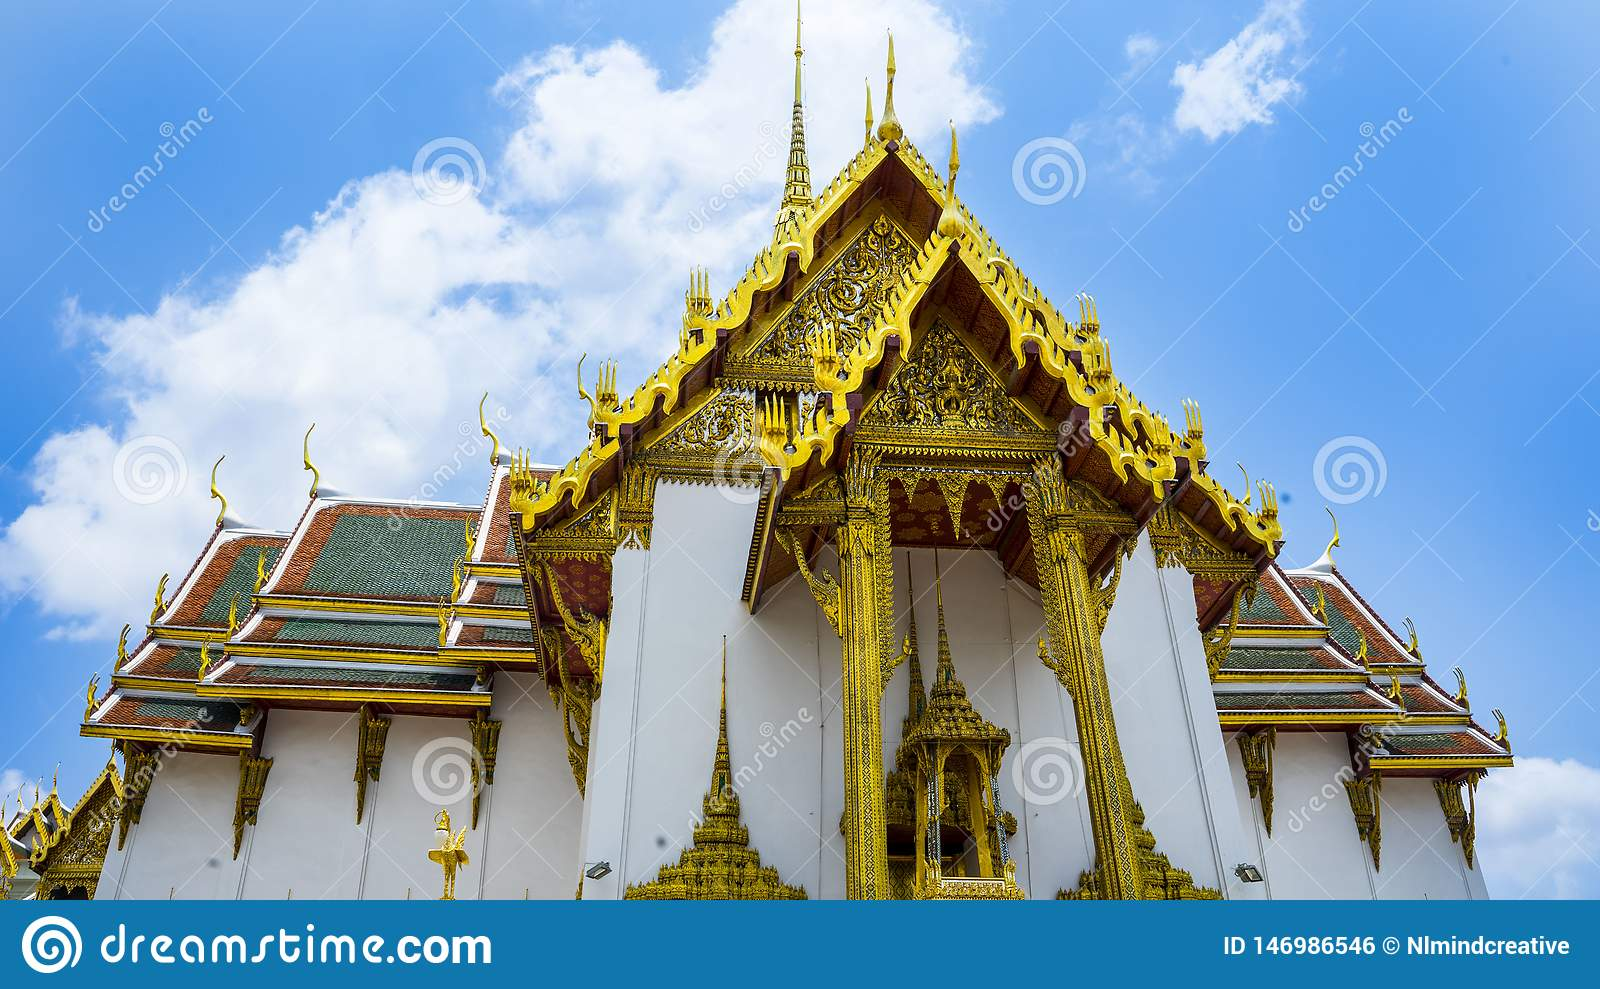 Close up of The Grand Palace in thailand